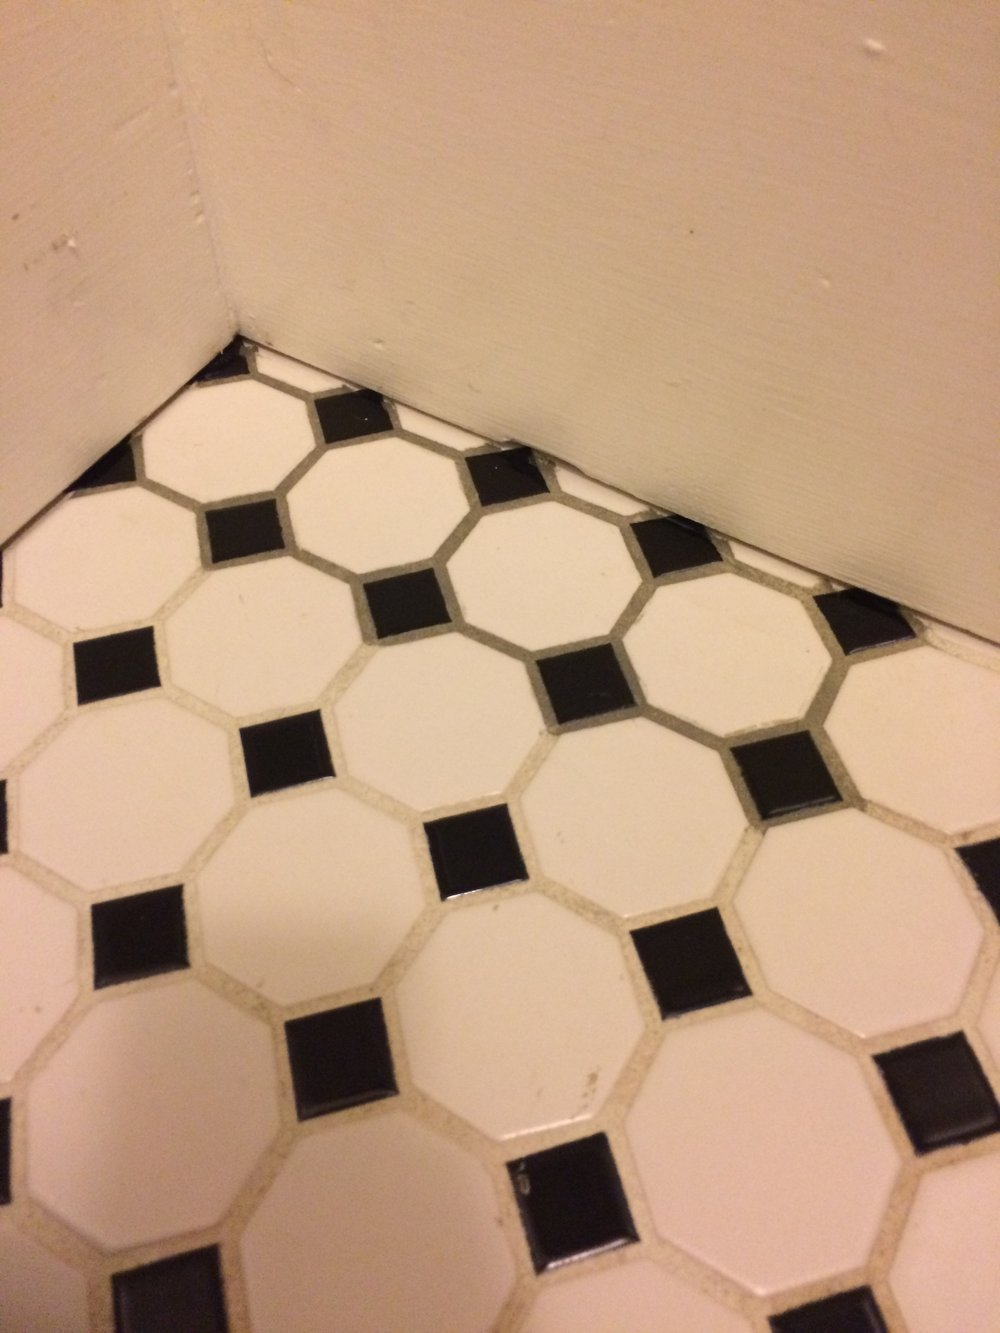 Here you can see the difference between the old white grout, and the grout that has been treated with PolyBlend Grout Renew.